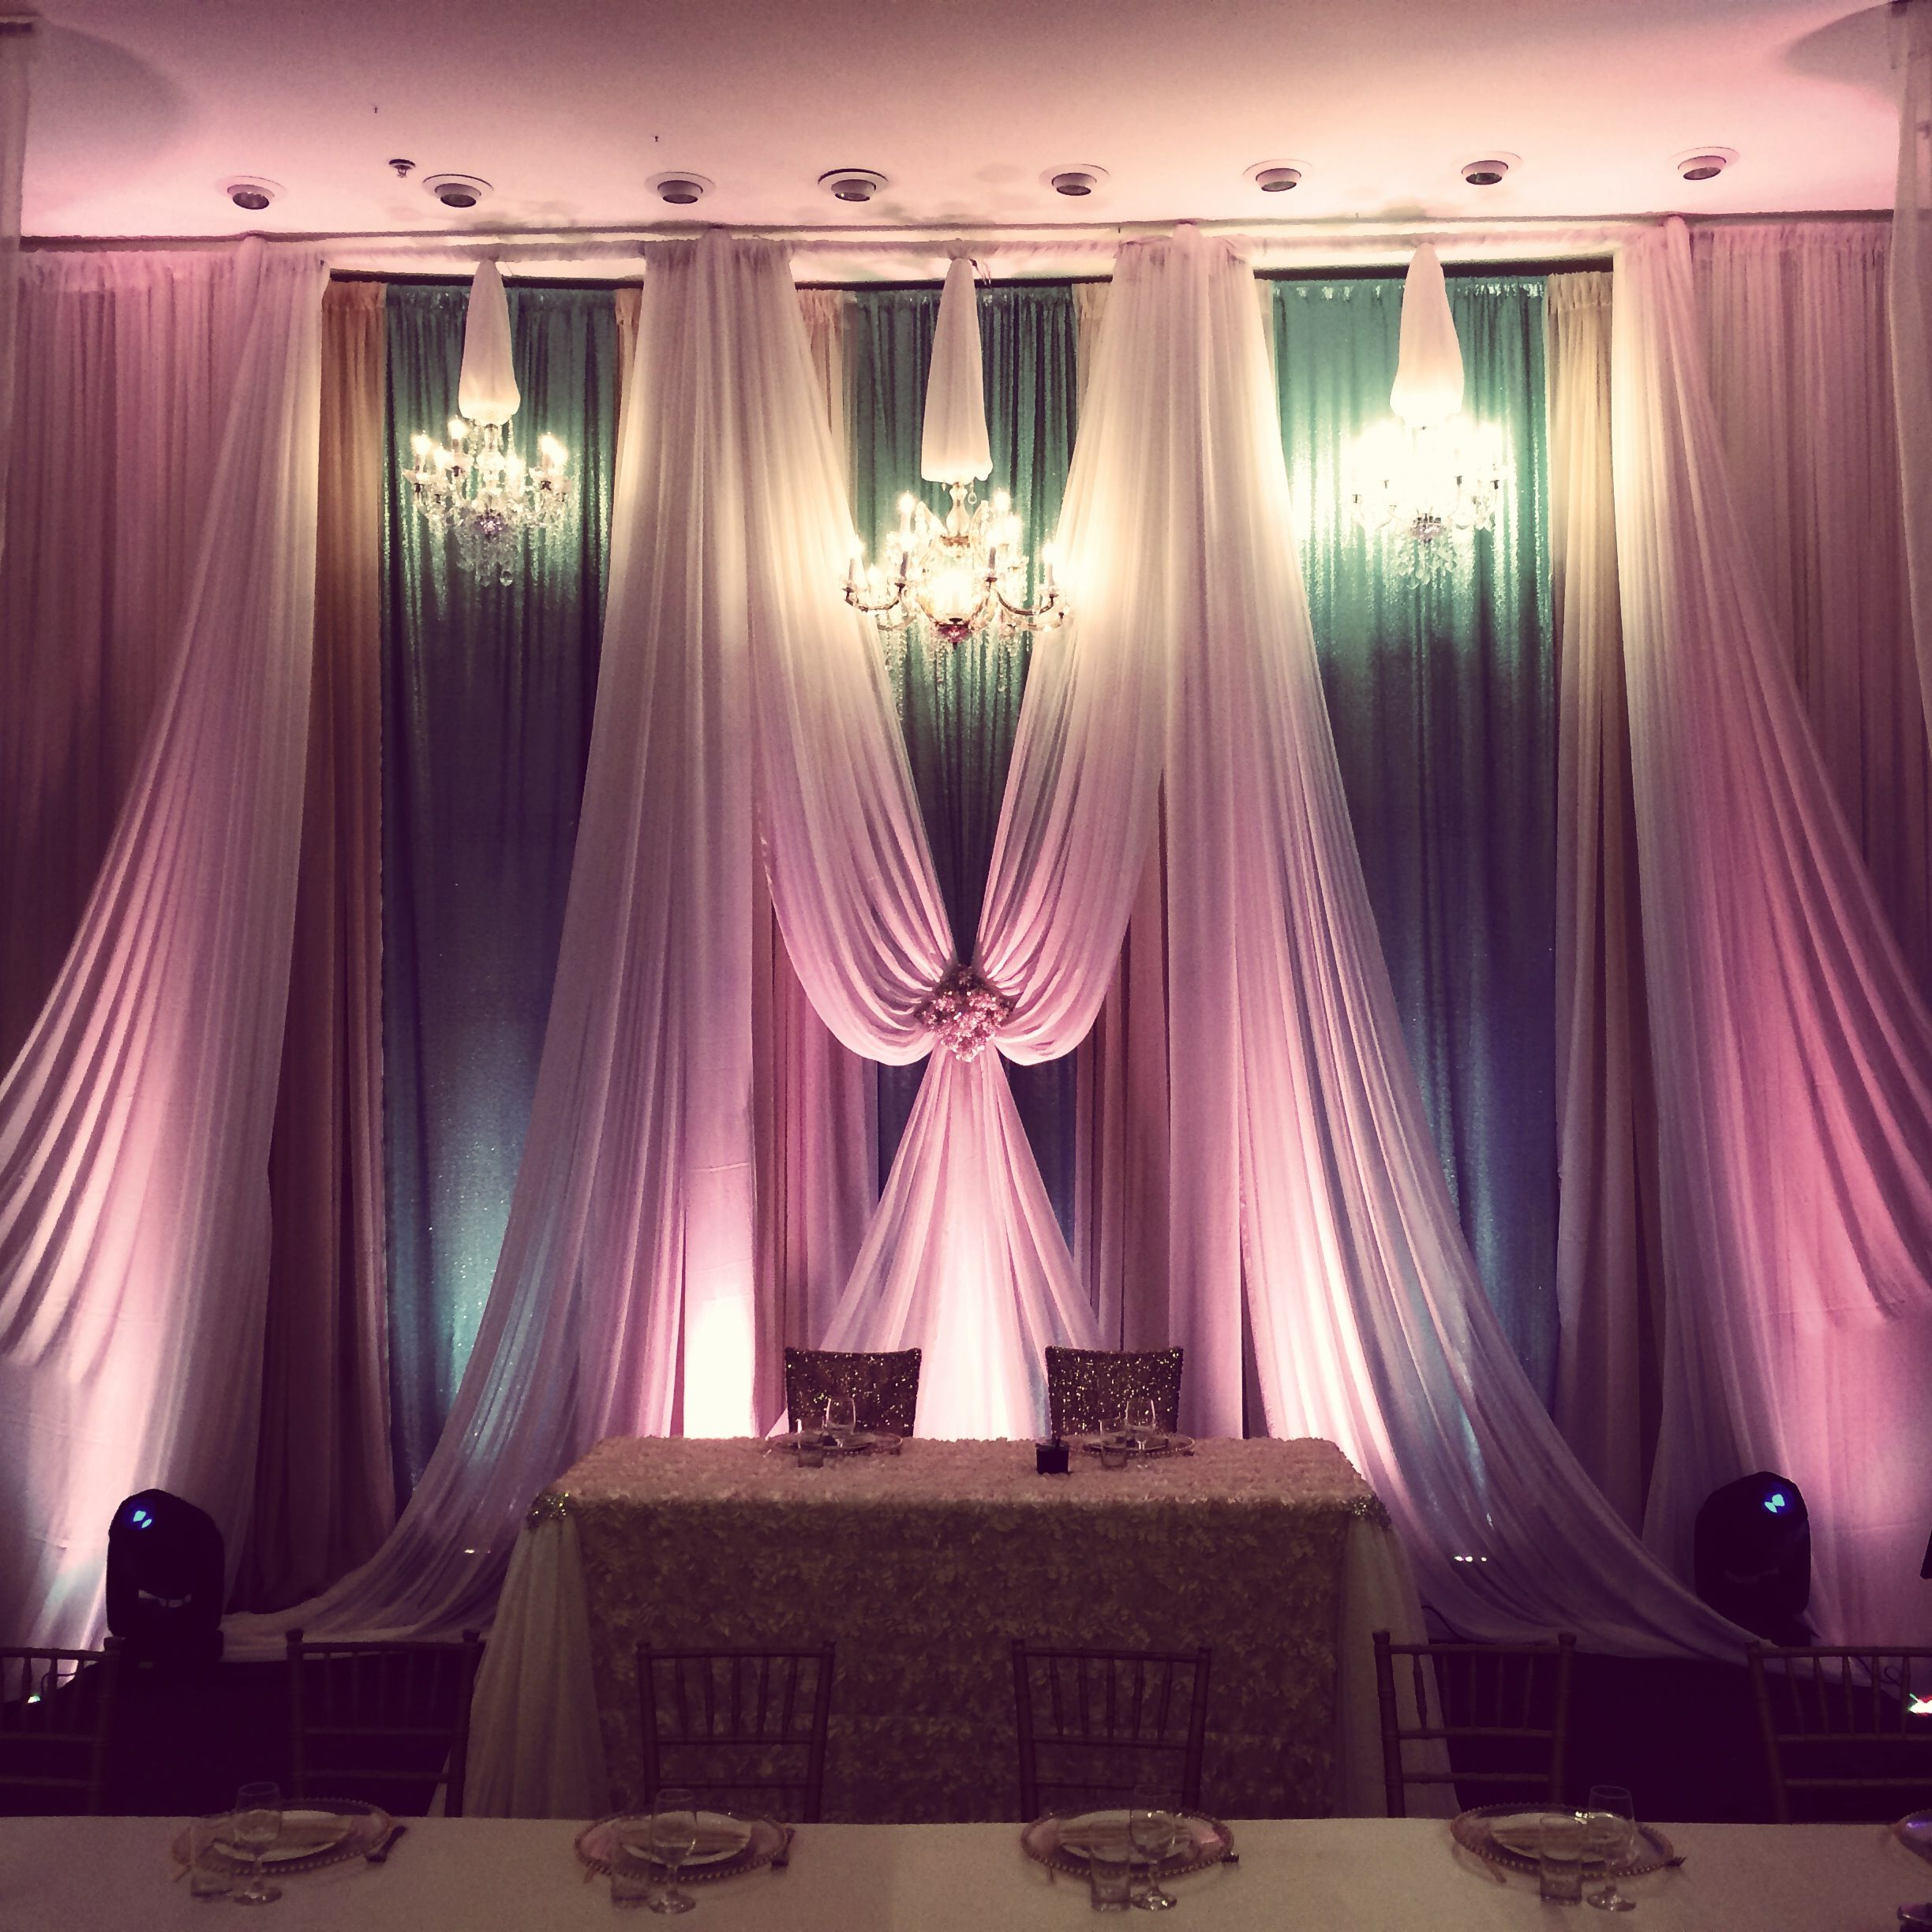 Diy Drapes For Wedding: Mint And Coral Drapery At Cupertino Dynasty